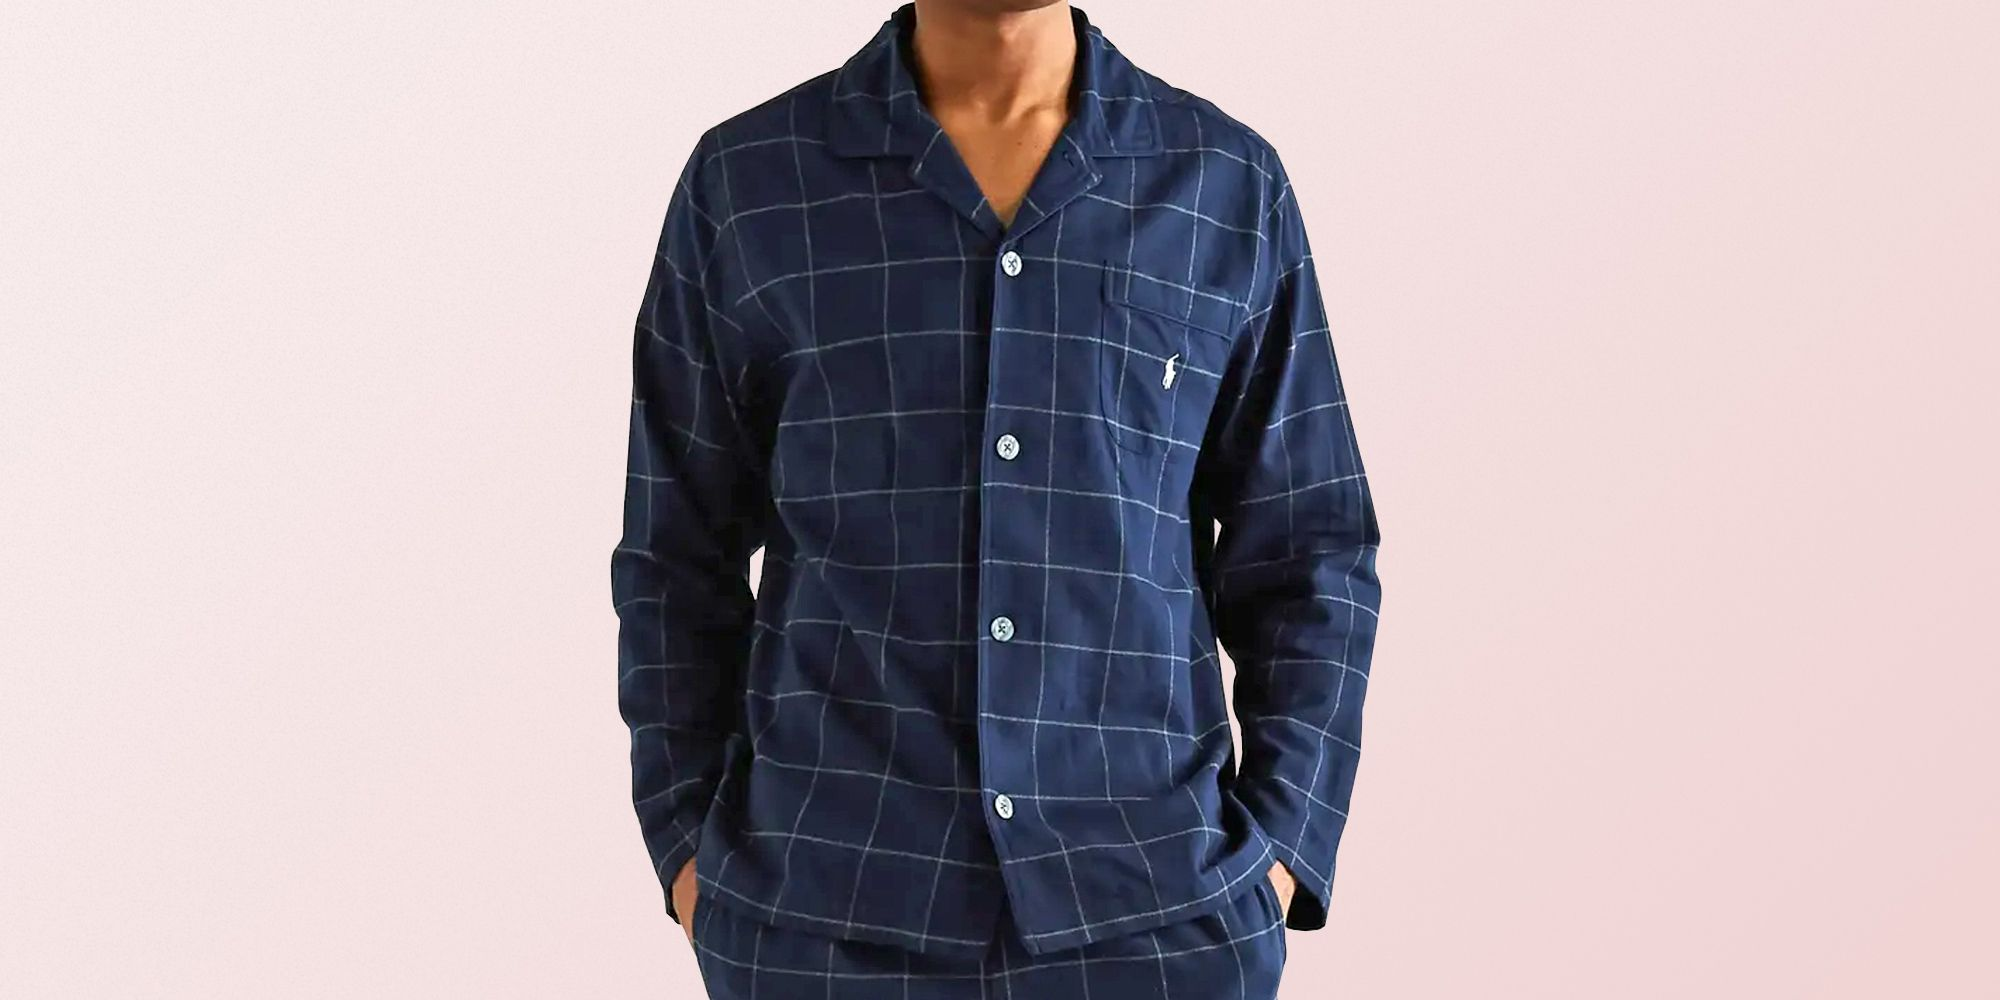 The Swankiest PJs for Men That Are Way More Stylish